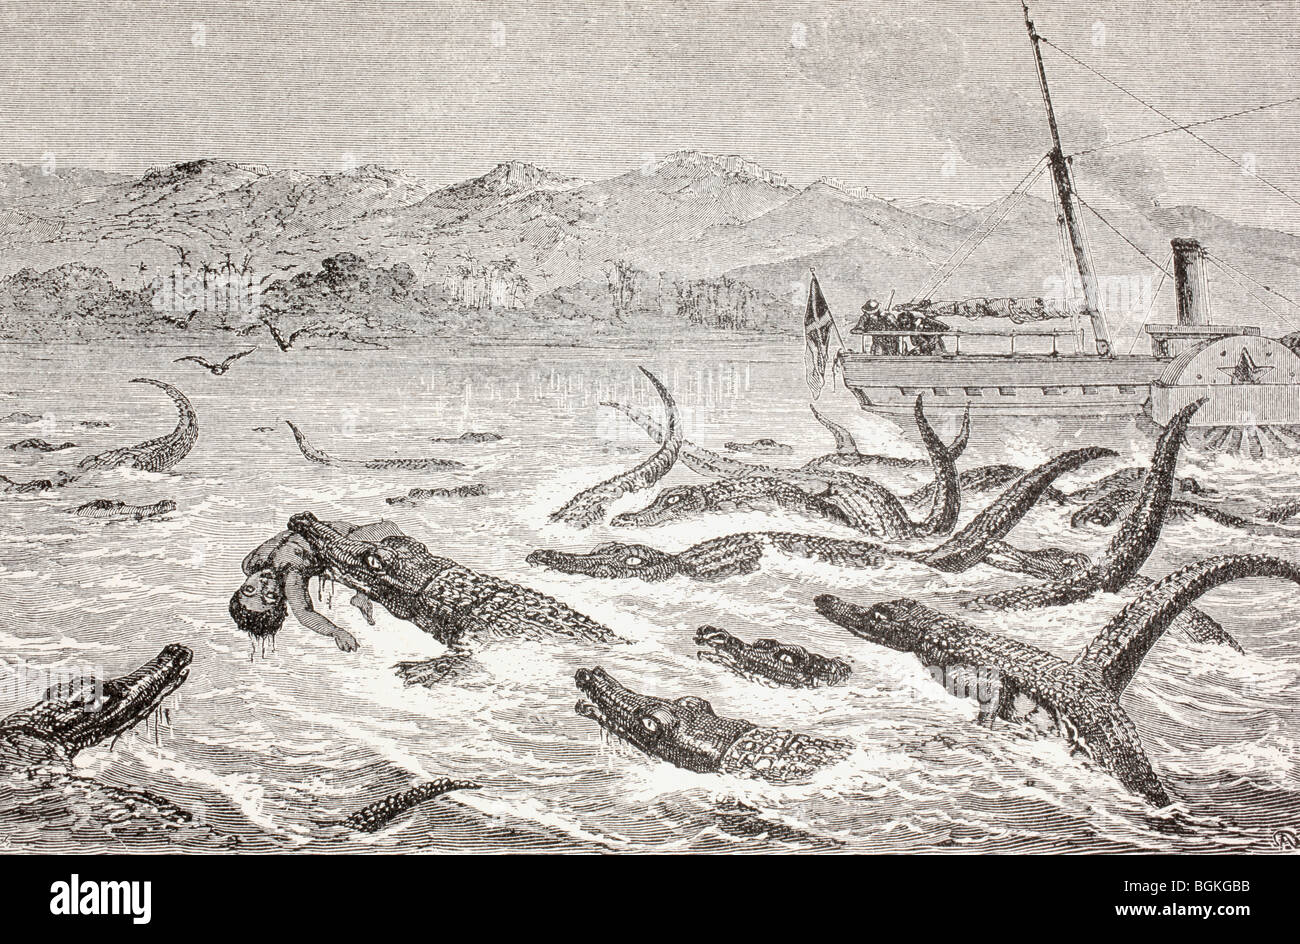 Crocodiles take a man in the Nile River in the late 19th century. - Stock Image